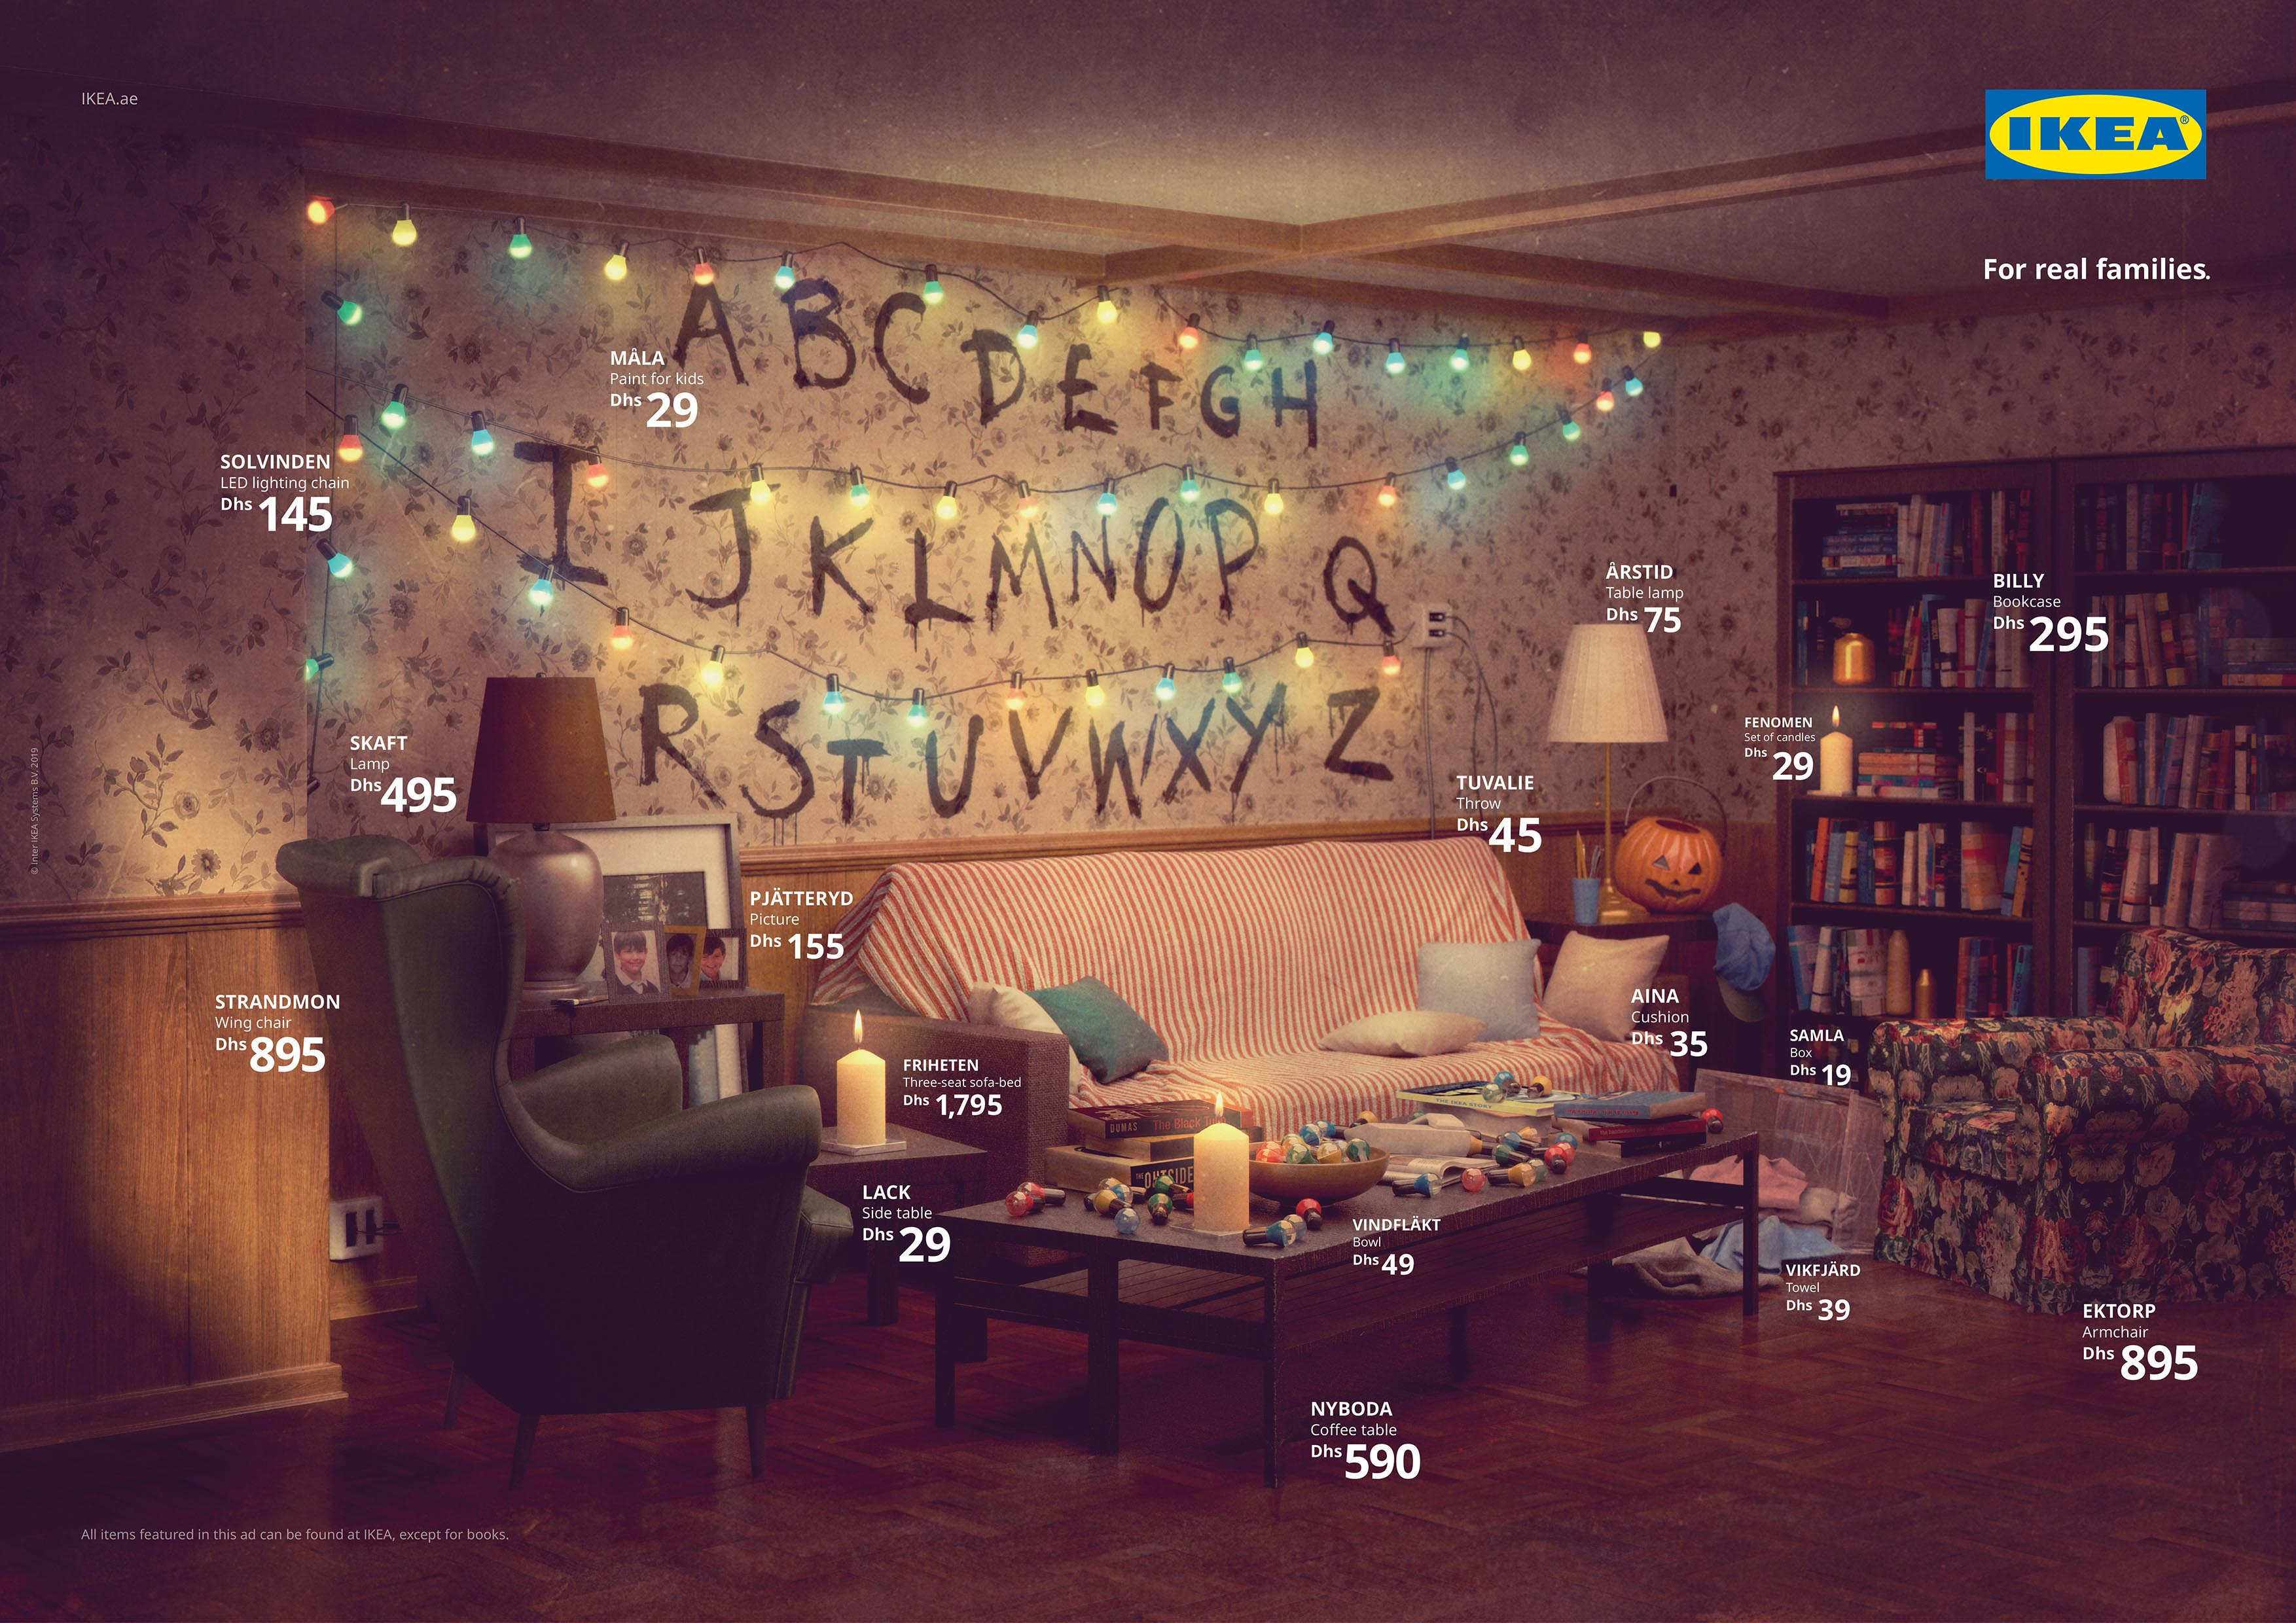 IKEA - Stranger Things - Publicis